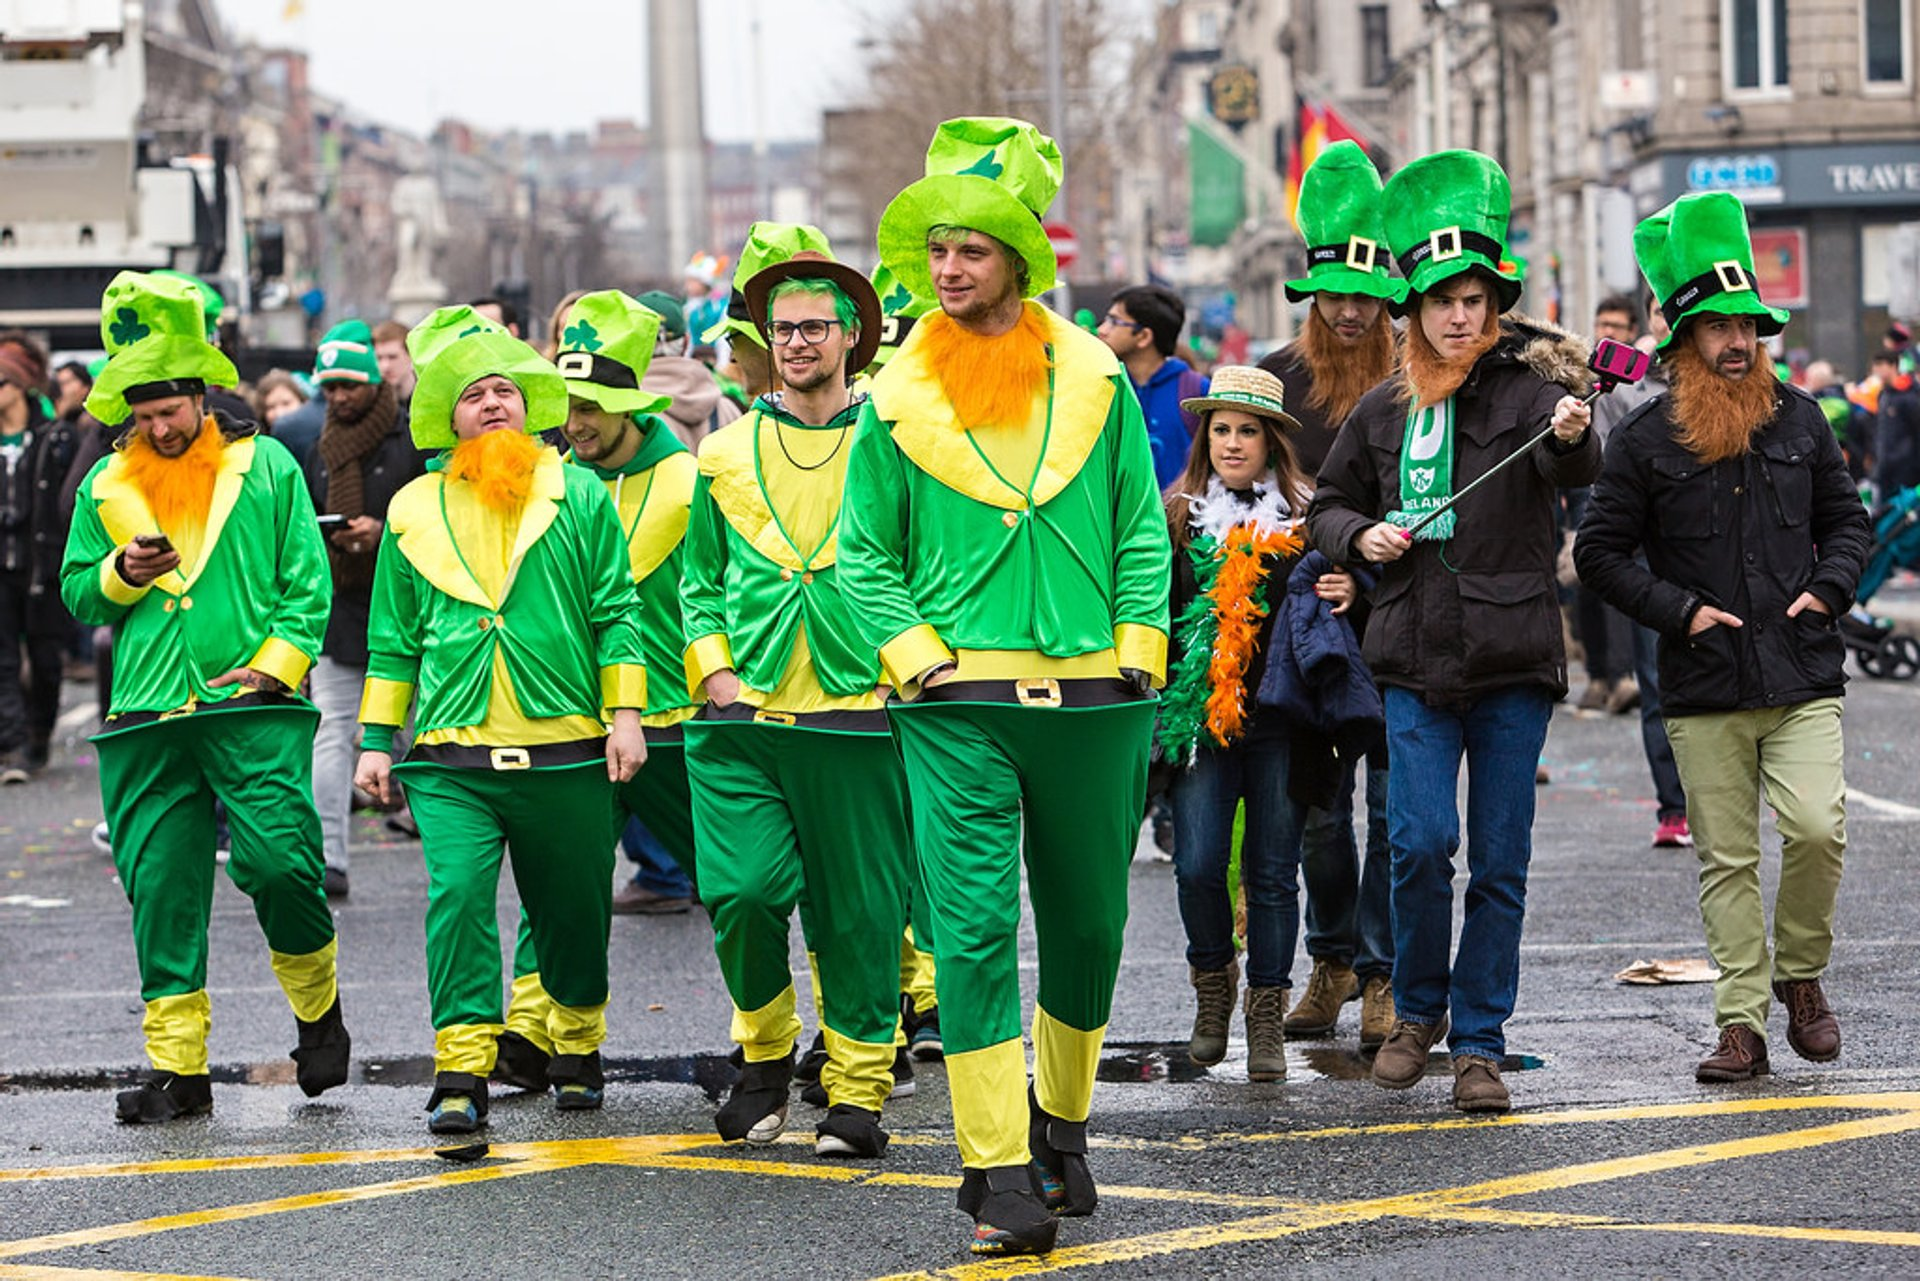 St. Patrick's Day in Ireland - Best Season 2019